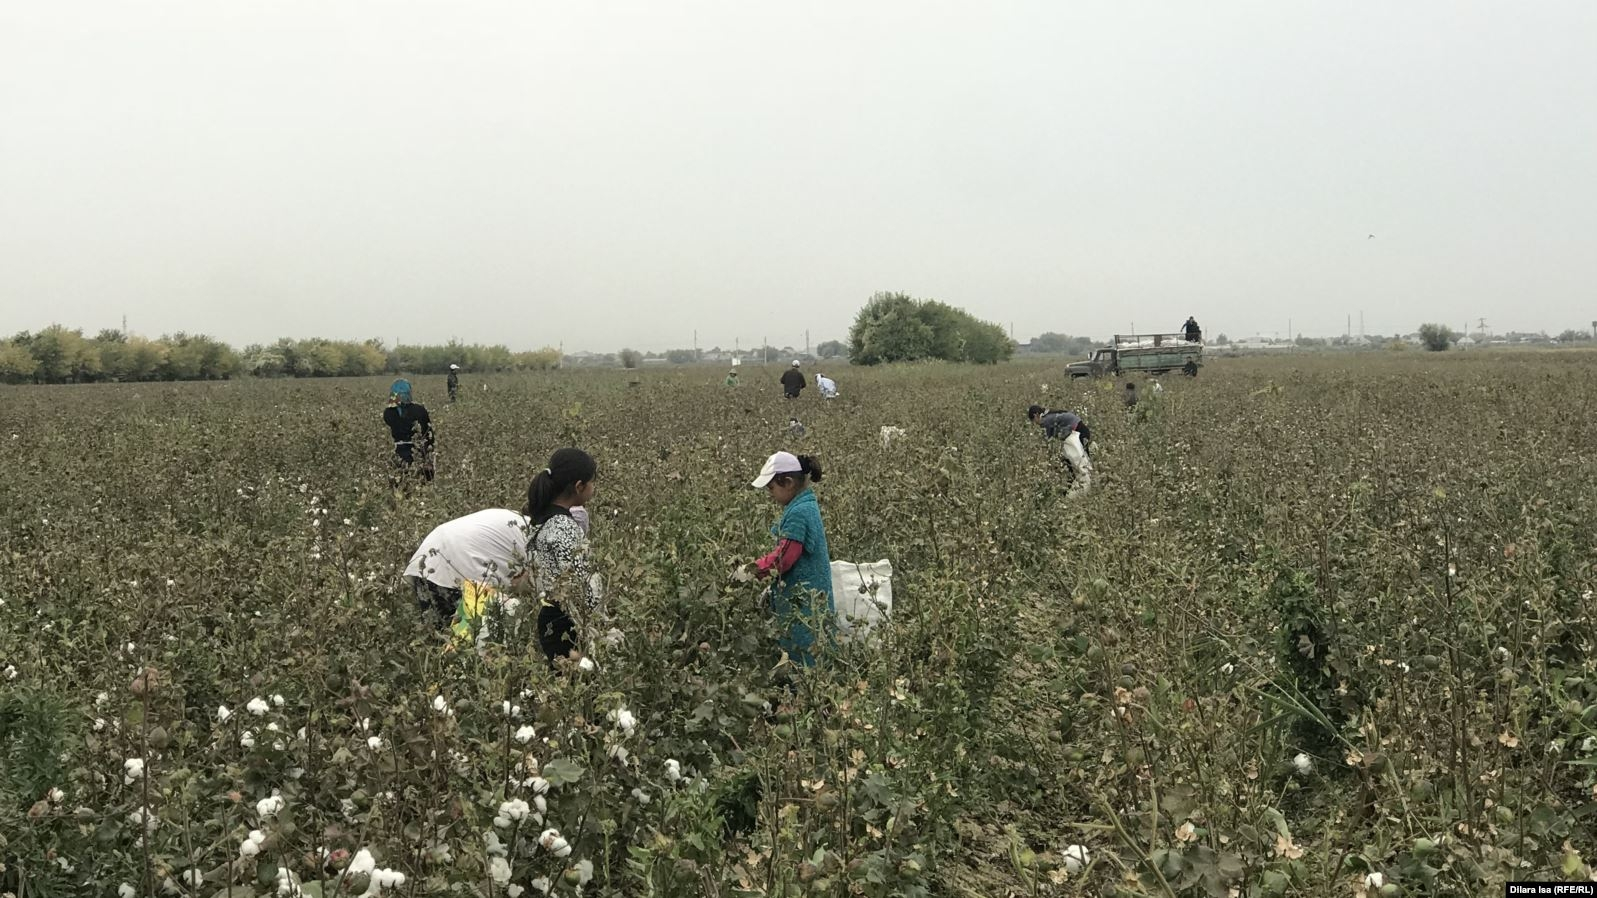 Children picking cotton field in September. (Photo: Dilara Isa / RFE/RL)